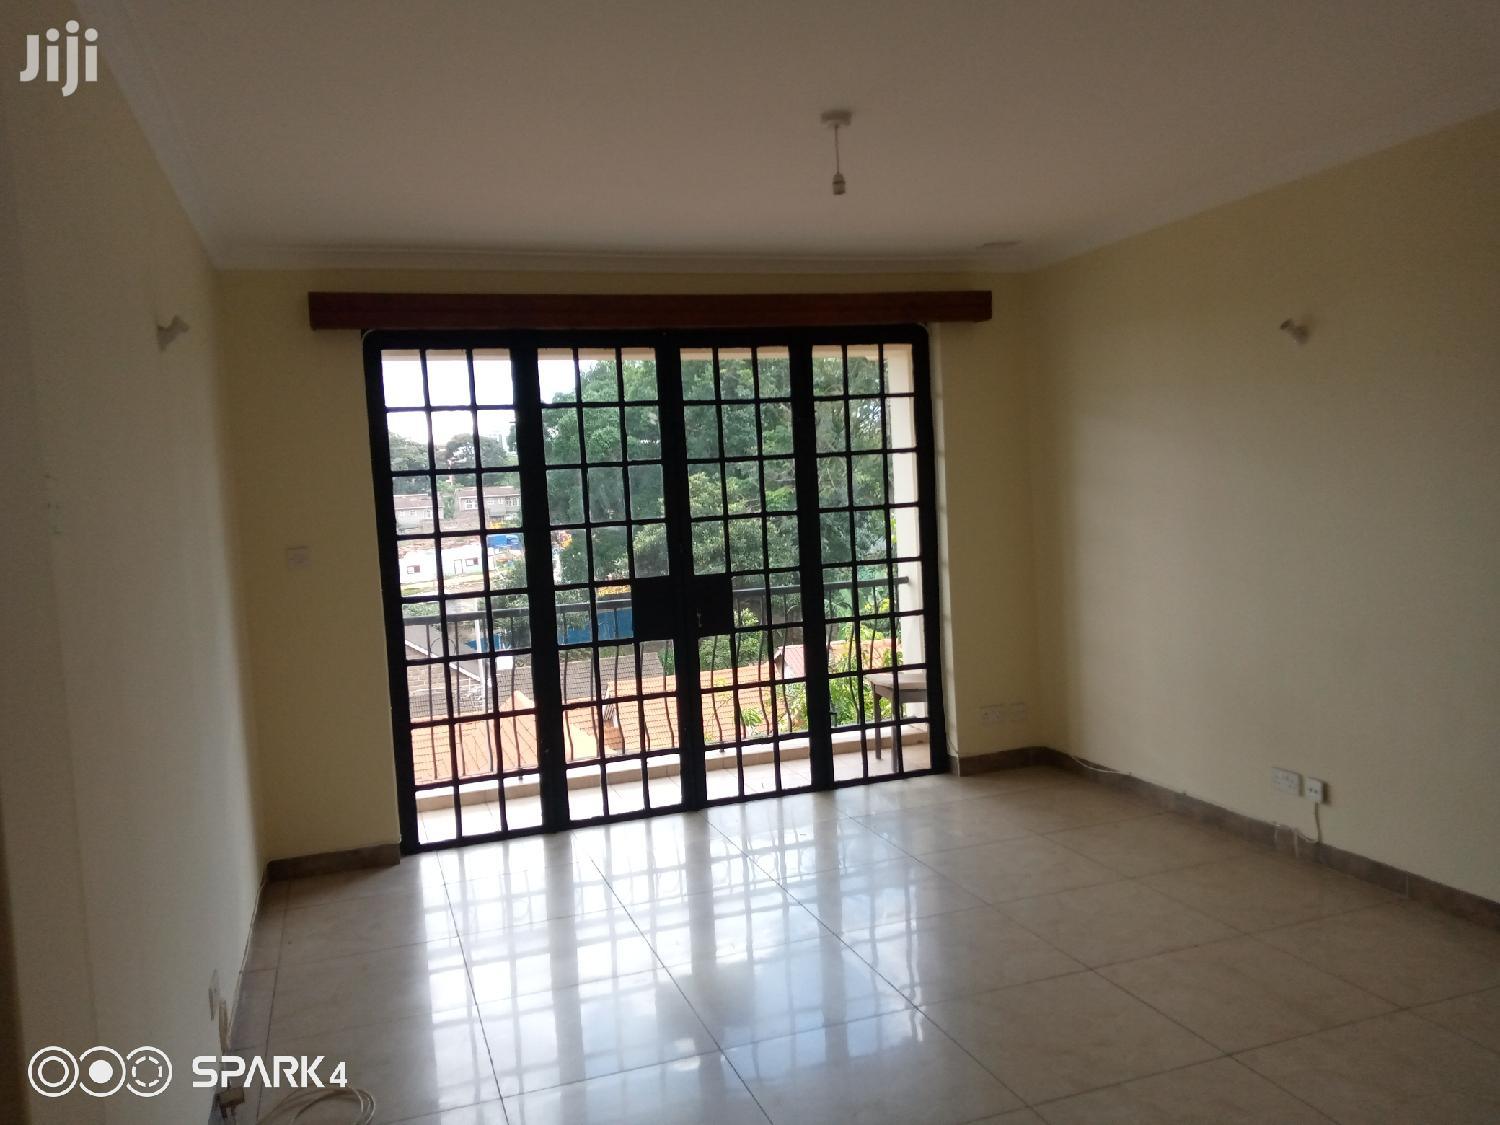 Archive: 4-Bedroom Duplex Apartment to Let in Westlands